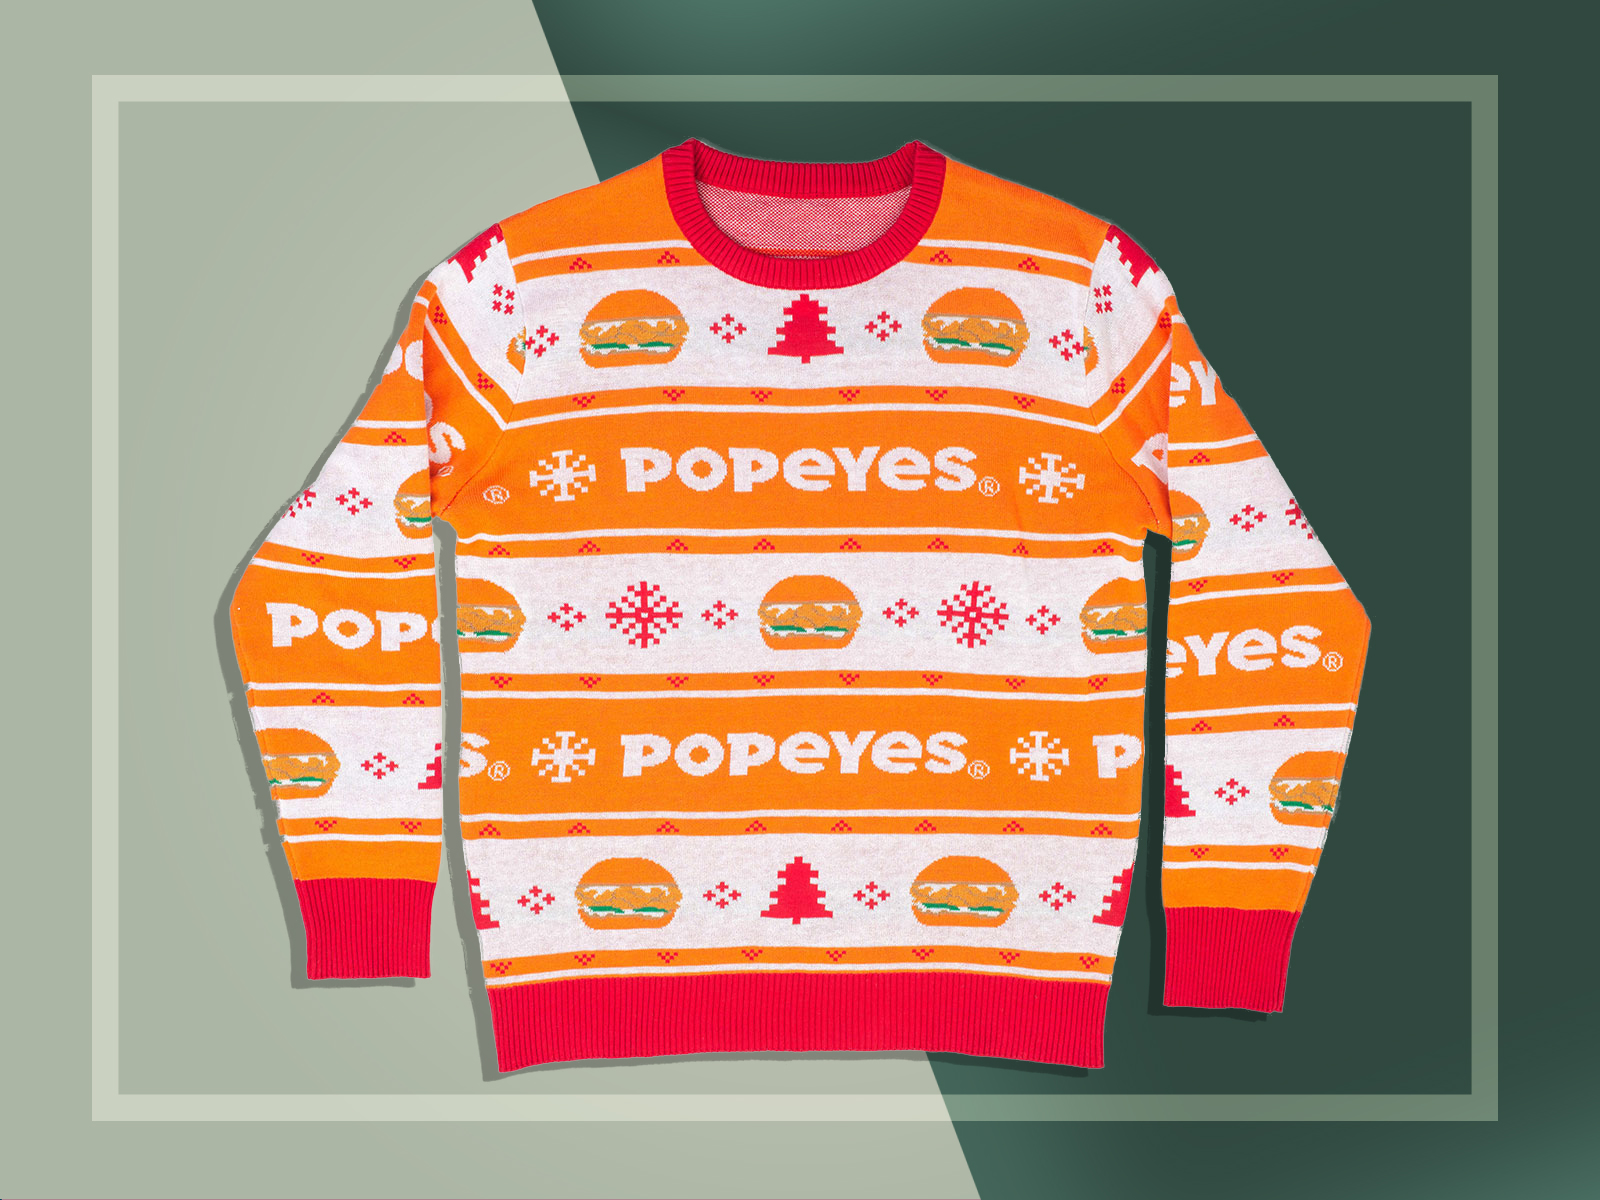 popeyes-ugly-christmas-sweater-FT-BLOG1219.jpg